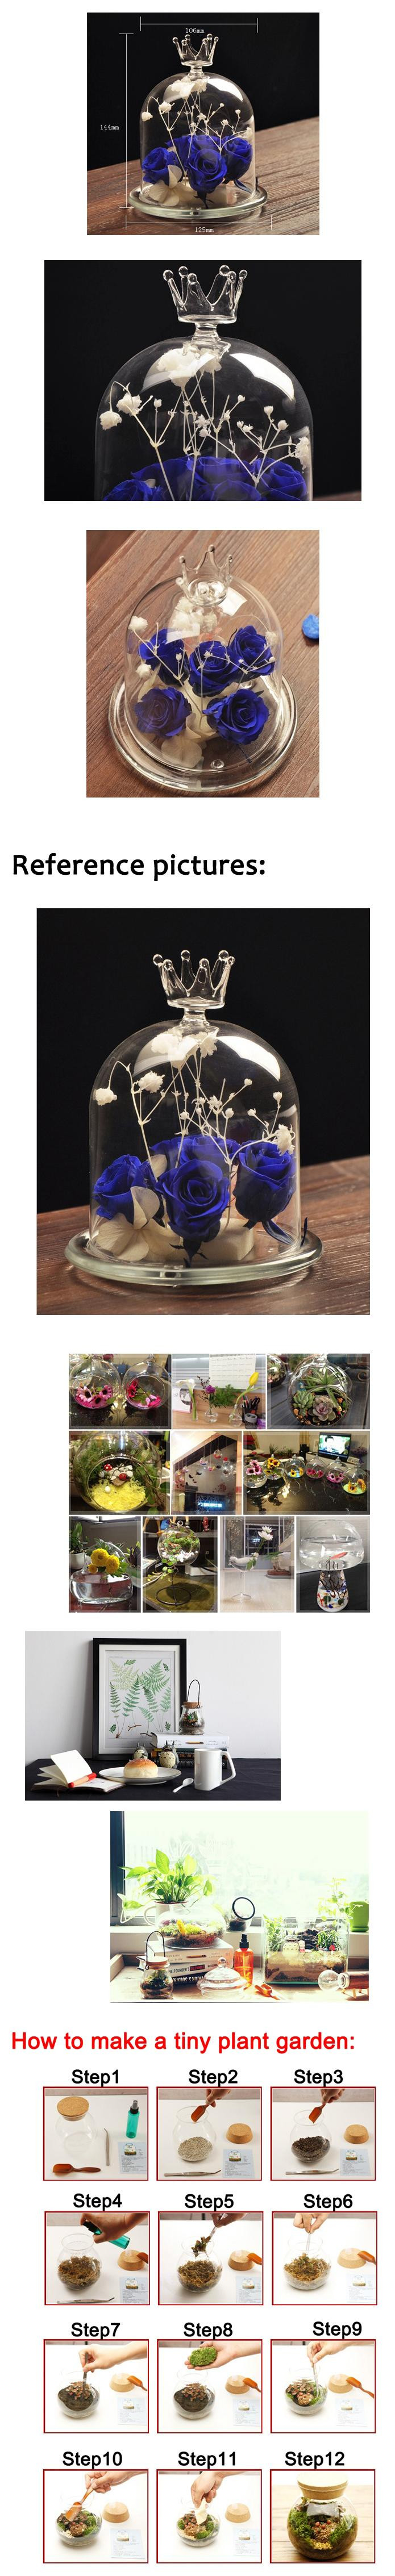 vase with rope handle of 5 6 inches transparent flower plant vase crown glass cloche vases with import duties taxes and charges